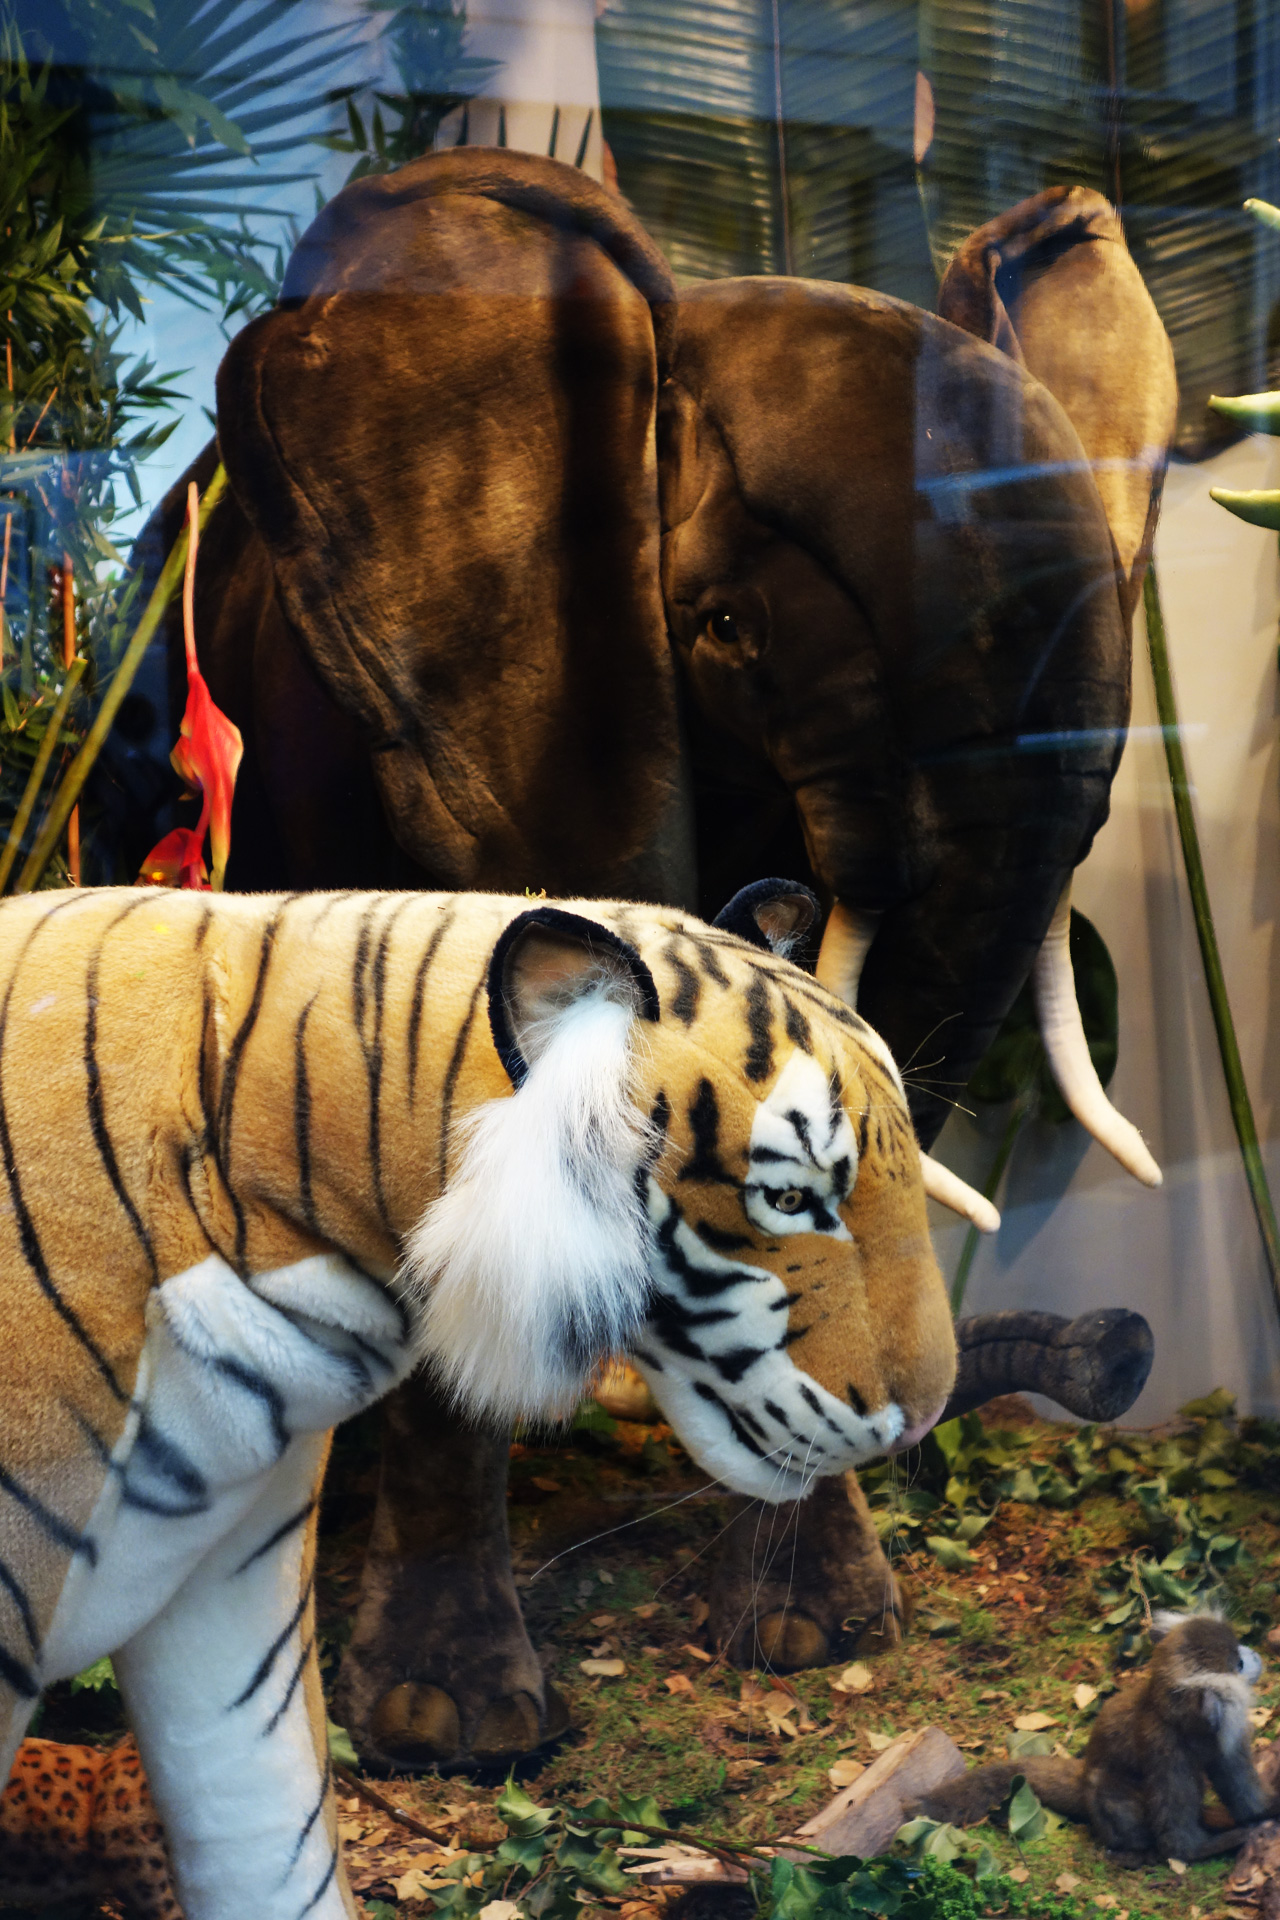 Baby-Tuileries-vitrines-noel-2013-jungle-tigre-elephant